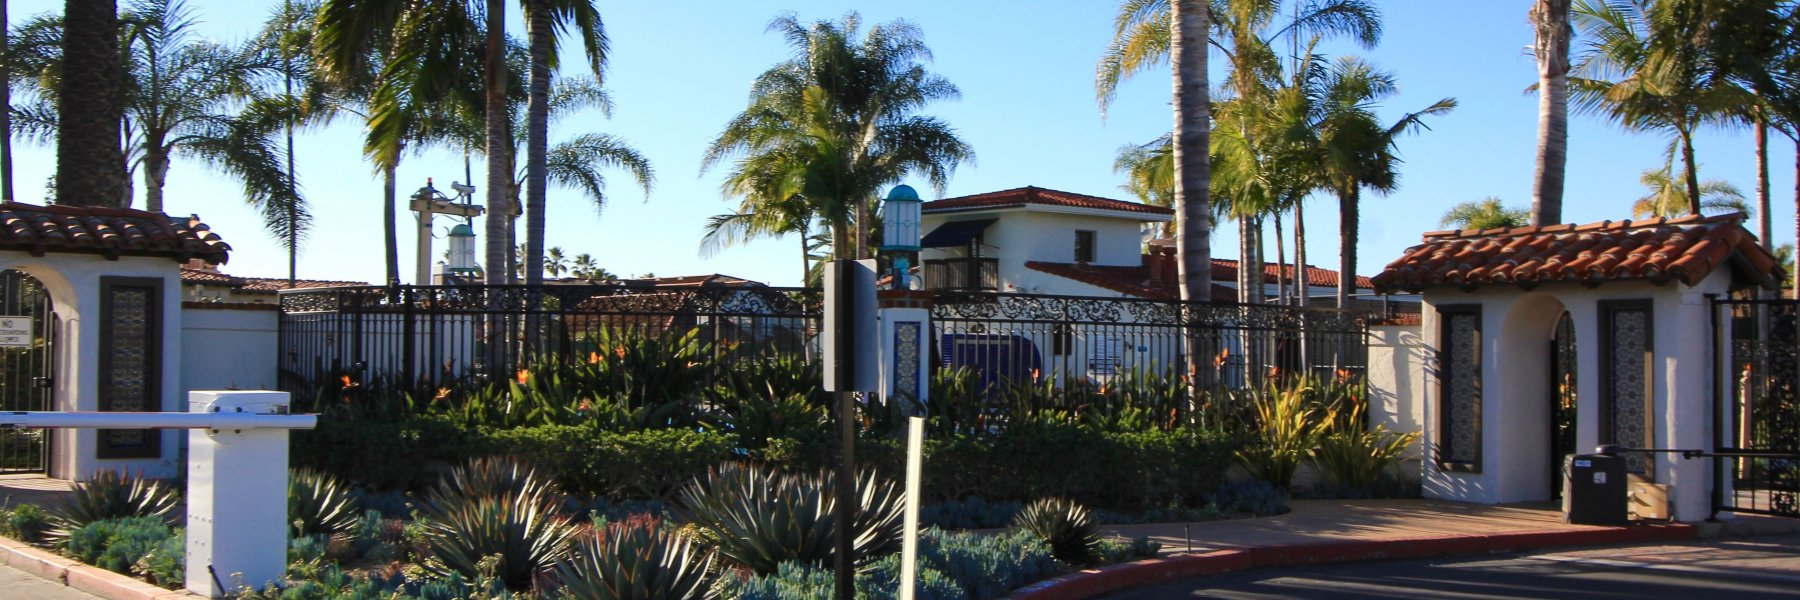 Cyprus Shore is a gated community in San Clemente